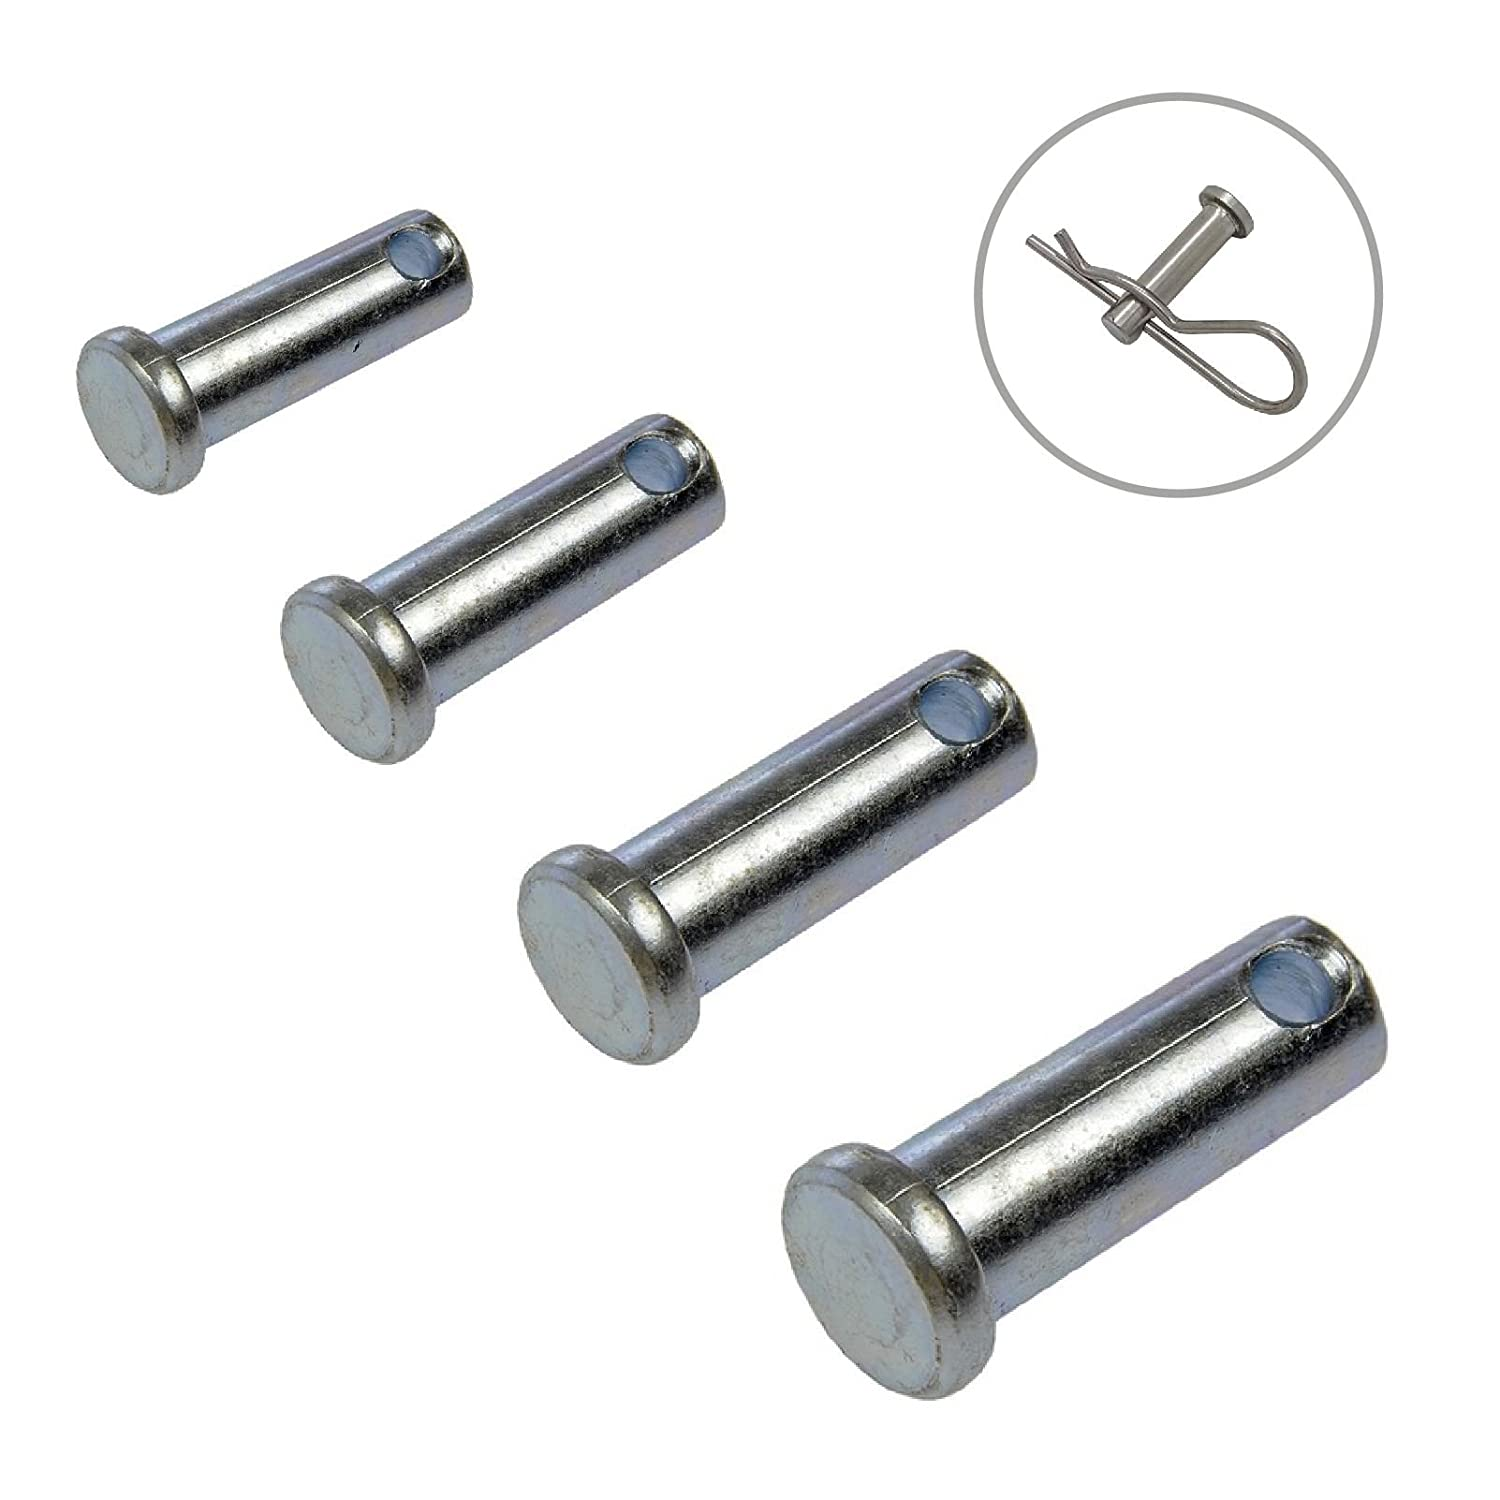 2 x Clevis Pins Metric M4 x 22mm Flat Headed Fasteners for Retaining Clips Home.smart